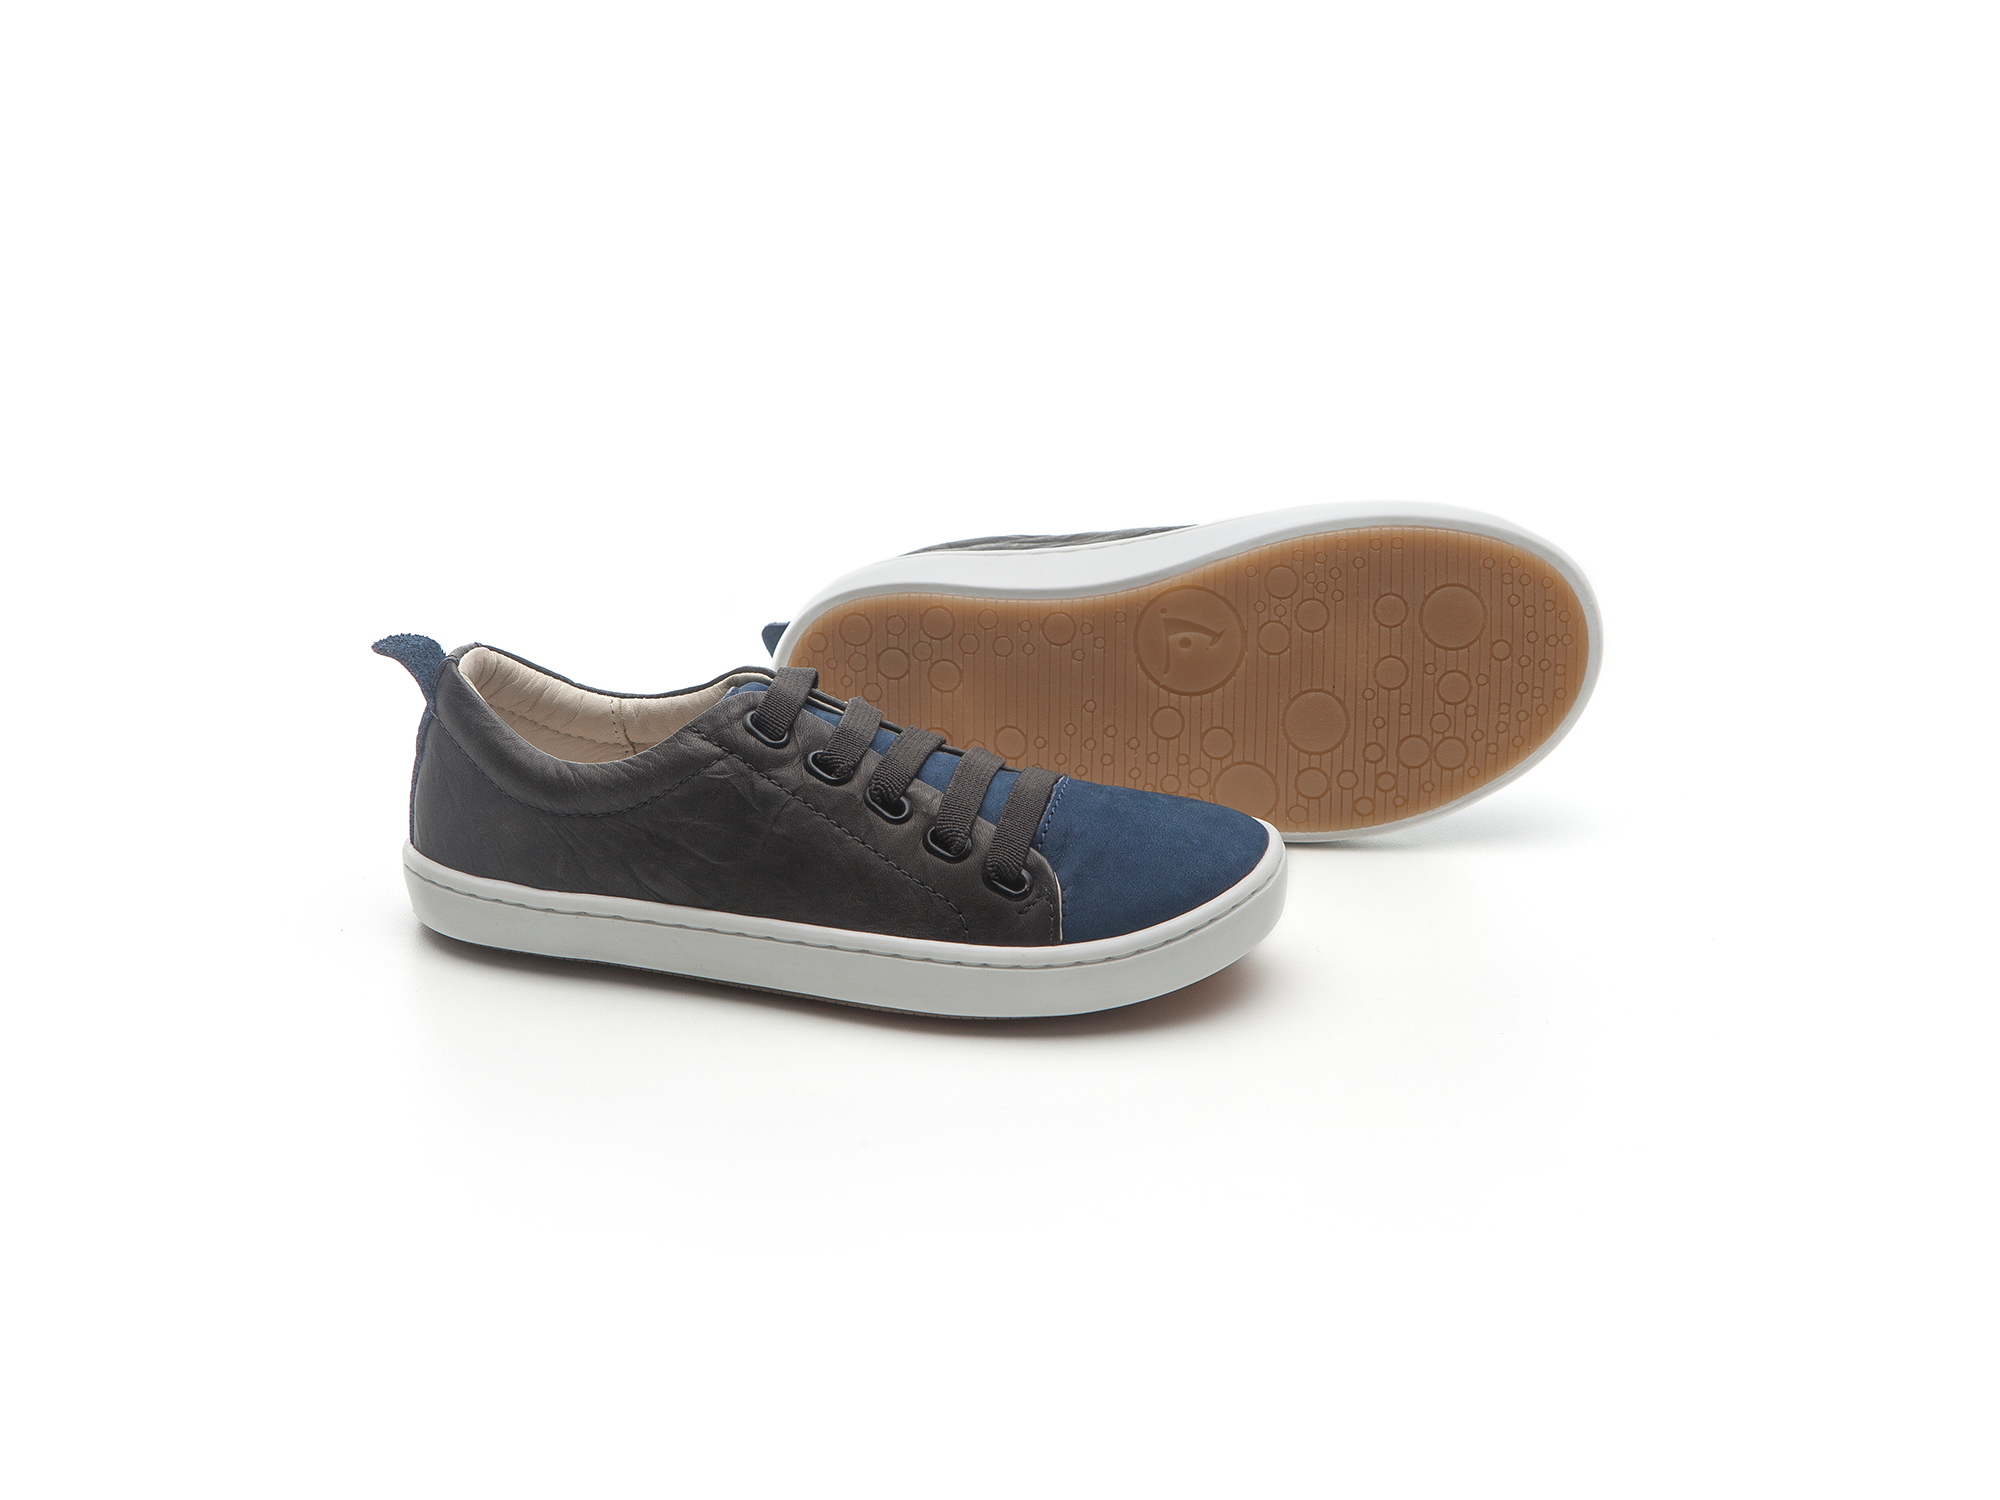 Tênis Ladder Black Crush/ Indigo Blue Nob. Junior 4 à 8 anos - 2